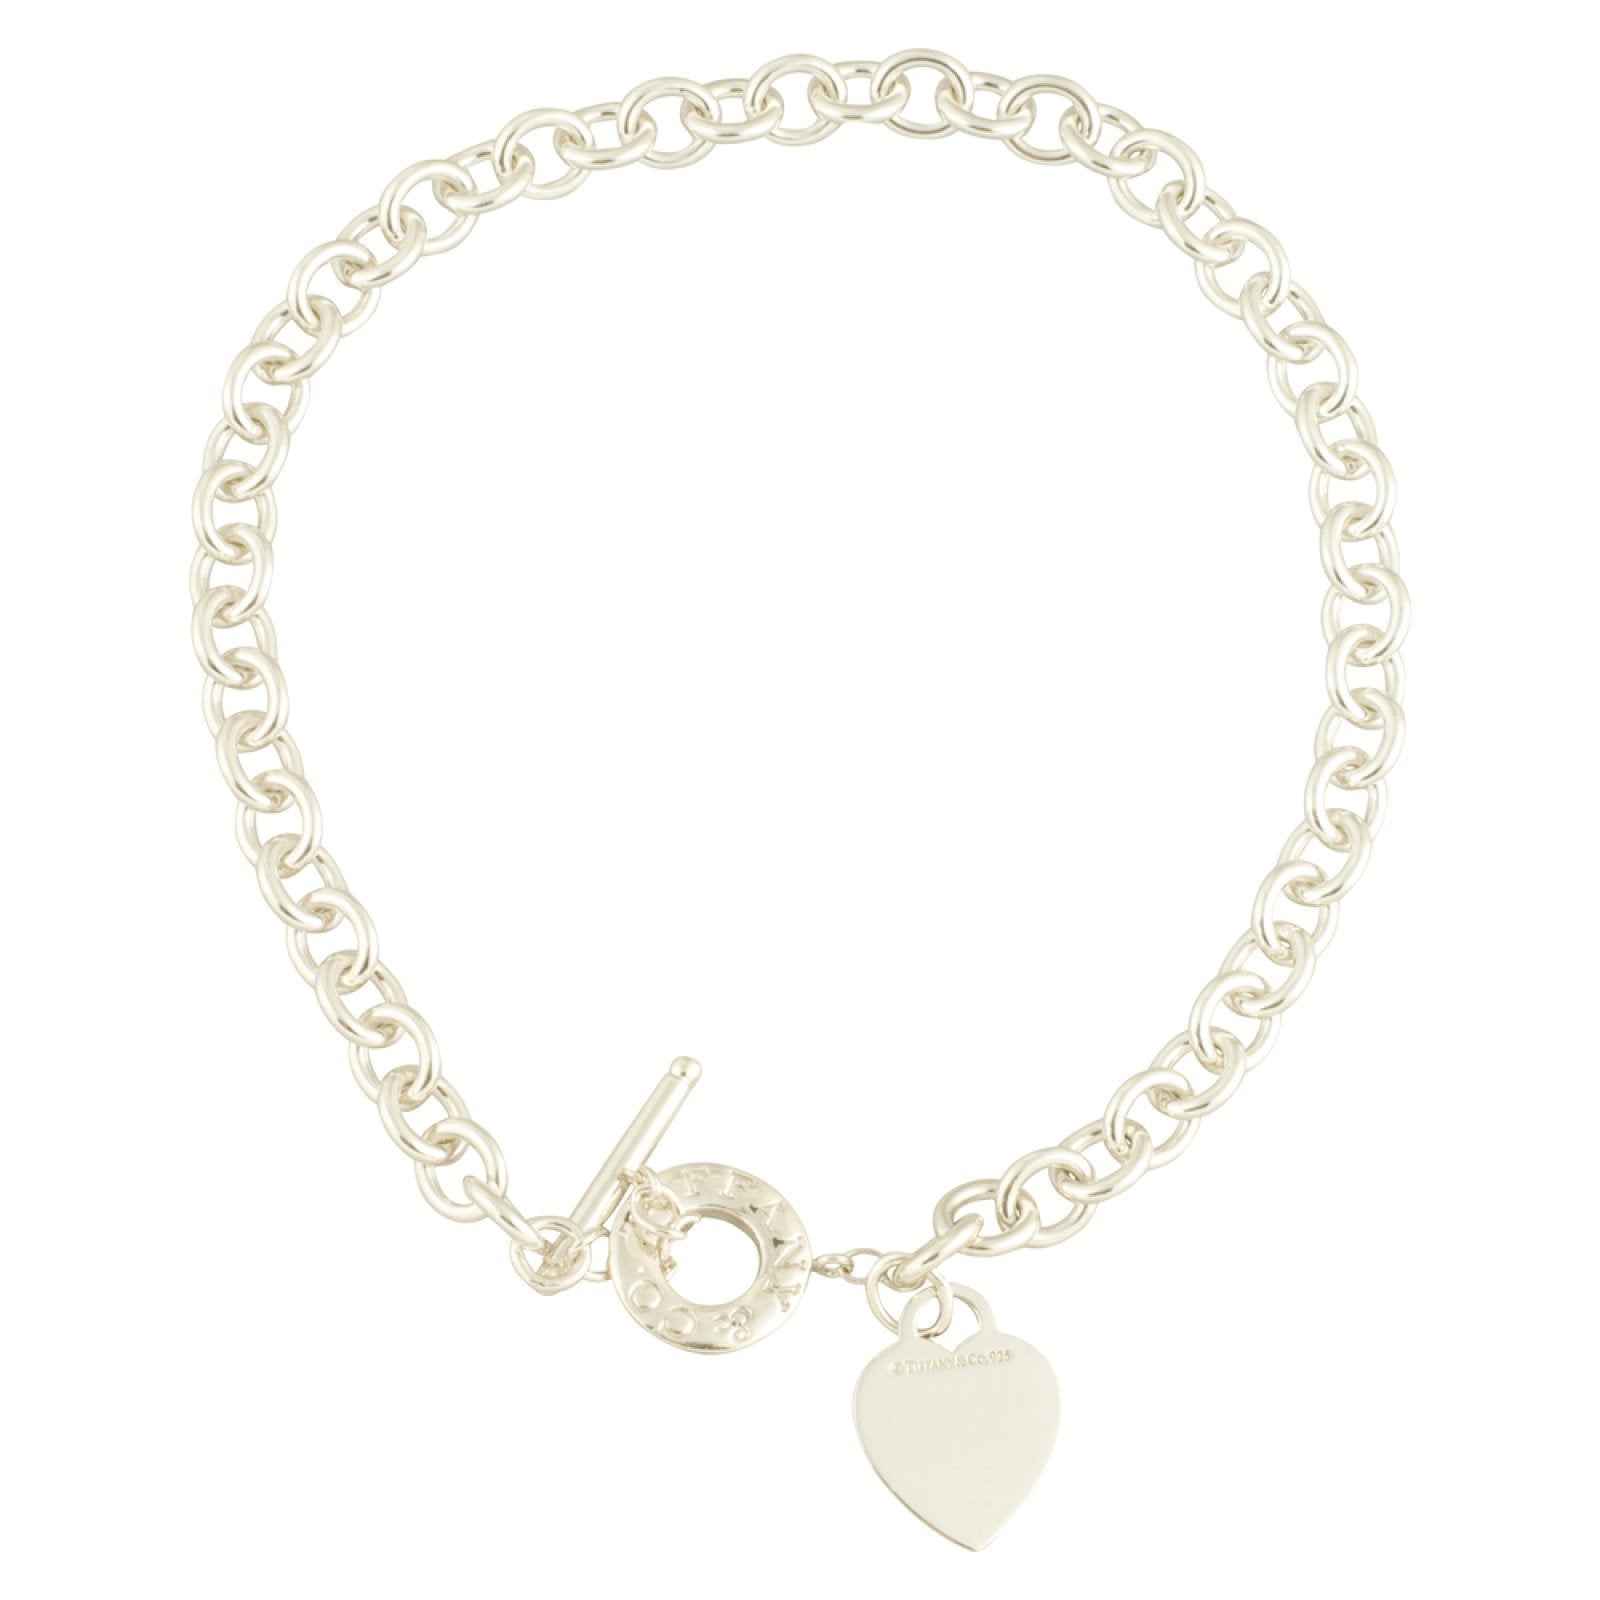 afa2d8a3f3dba Tiffany & Co. Heart Tag Necklace with Toggle Clasp in Sterling Silver